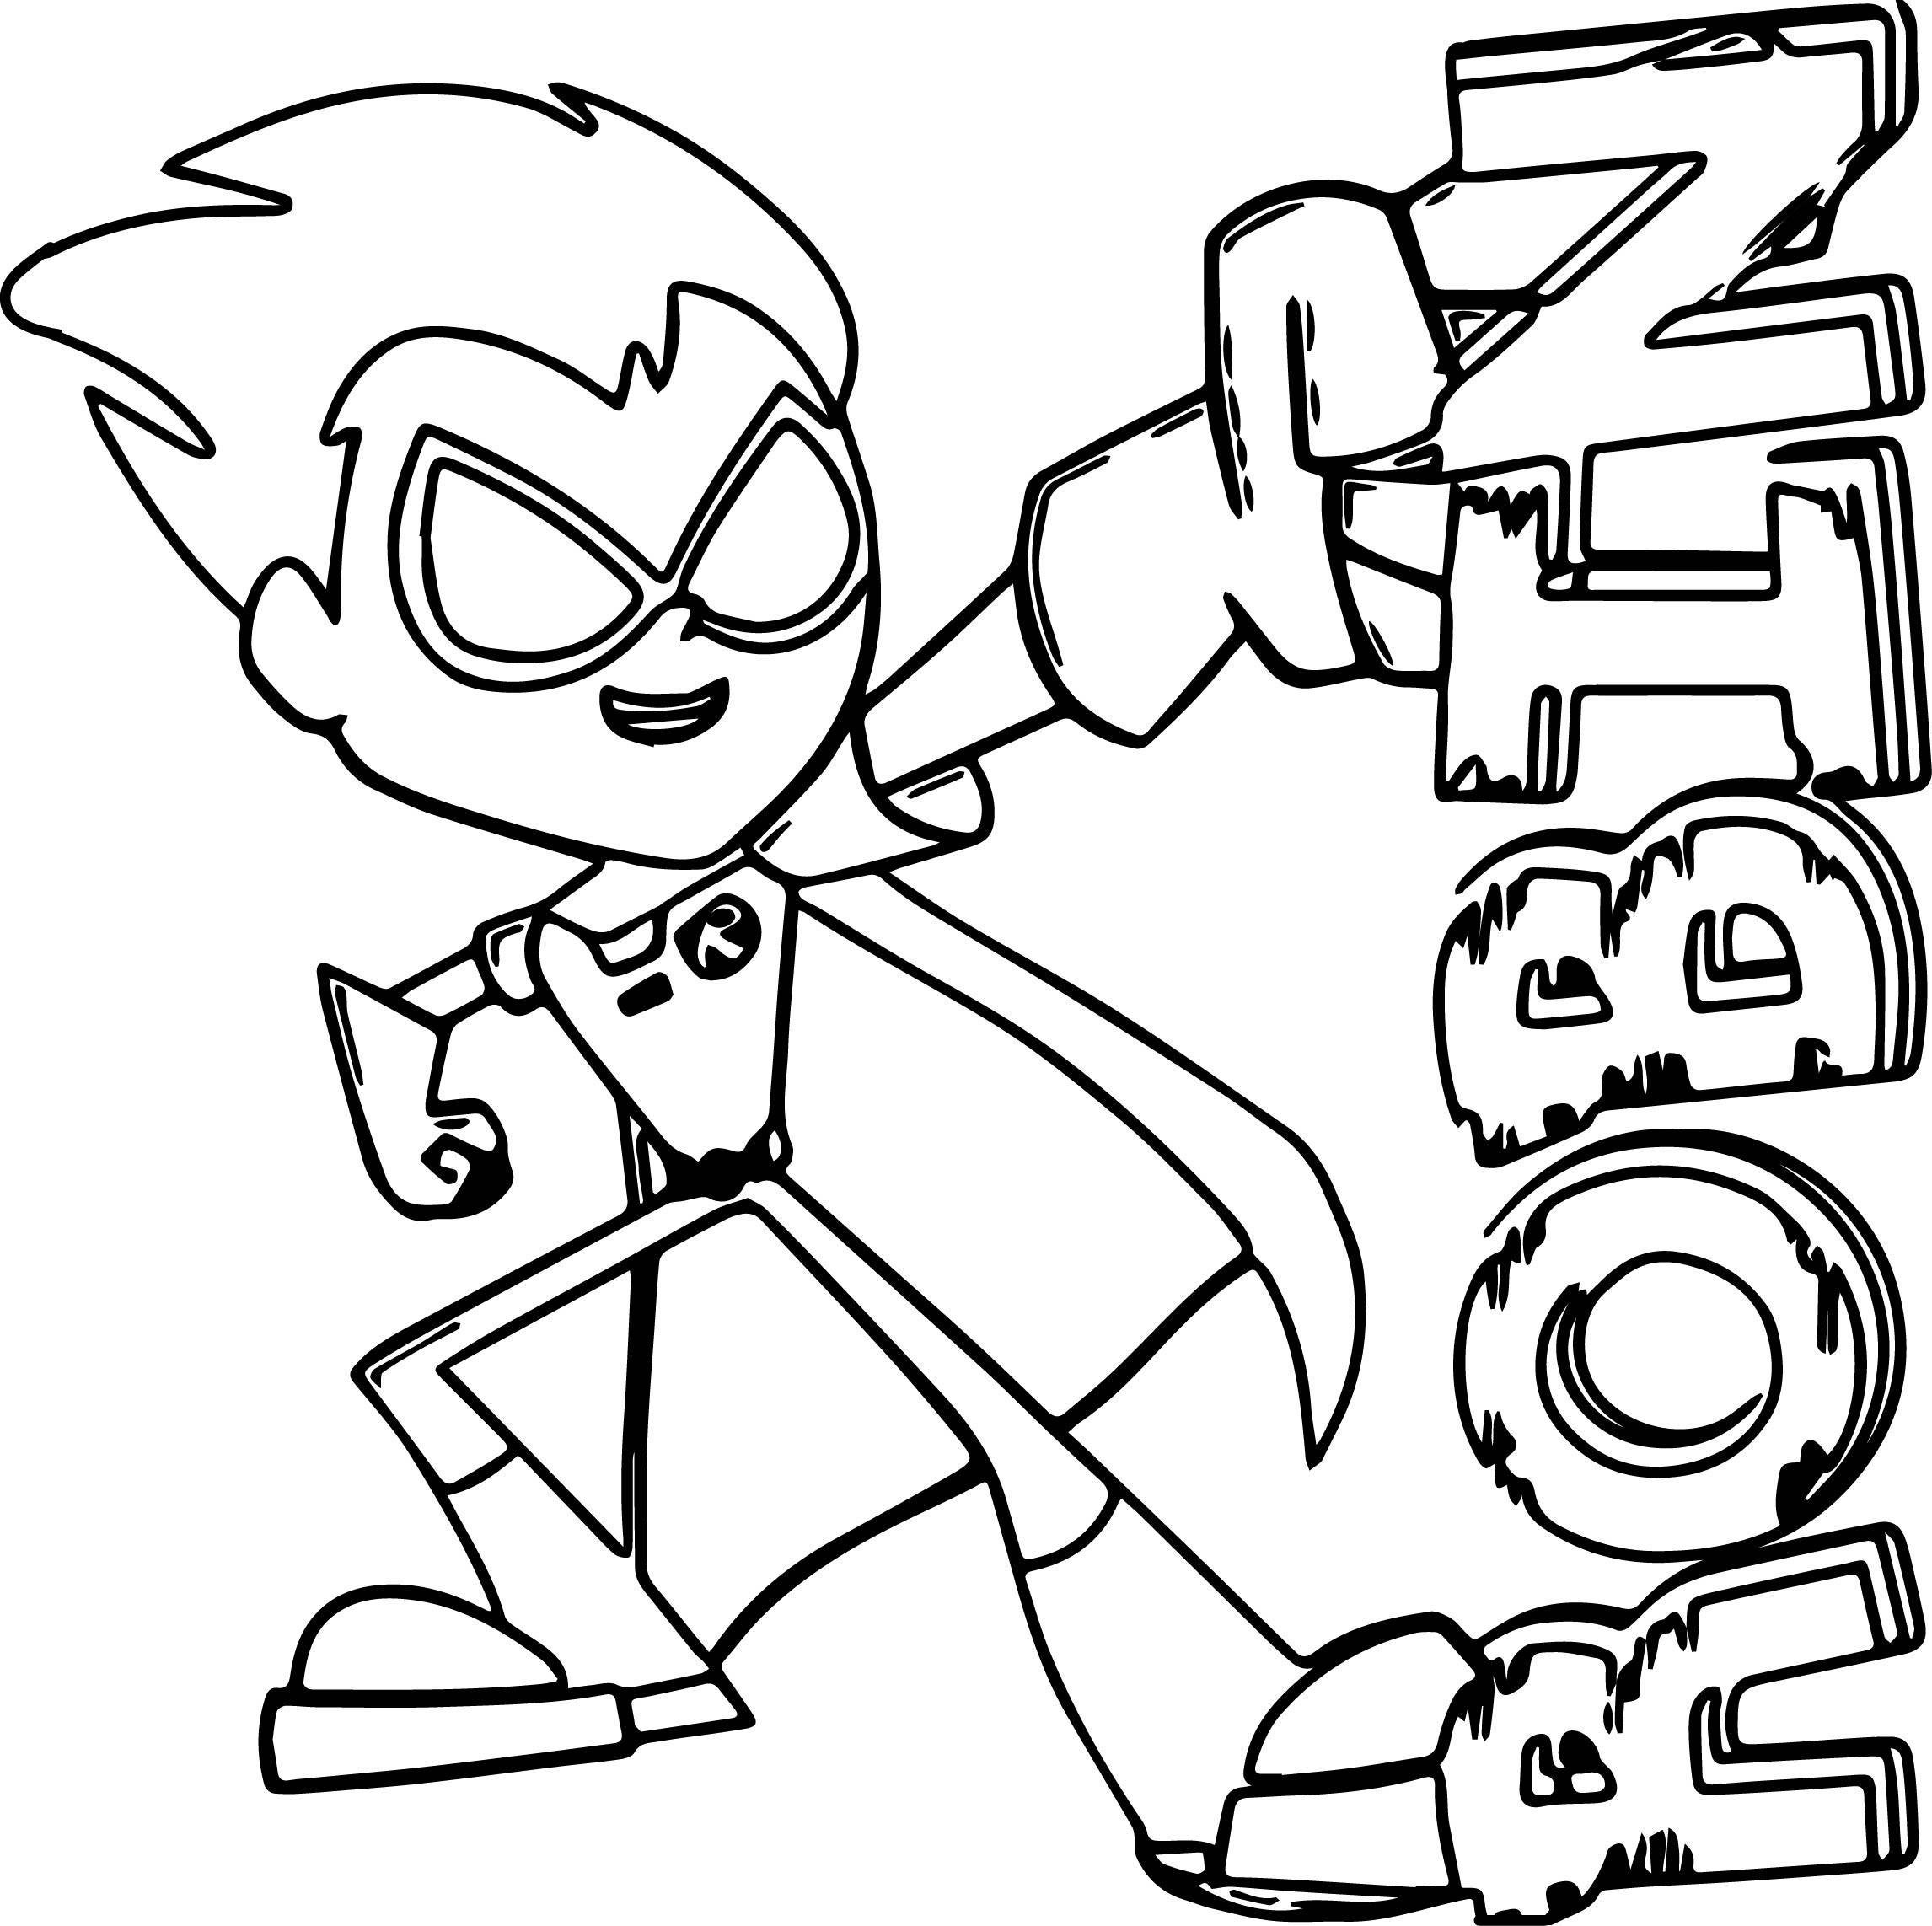 Teen Titans Go Coloring Pages AZ Coloring Pages | Coloring ...